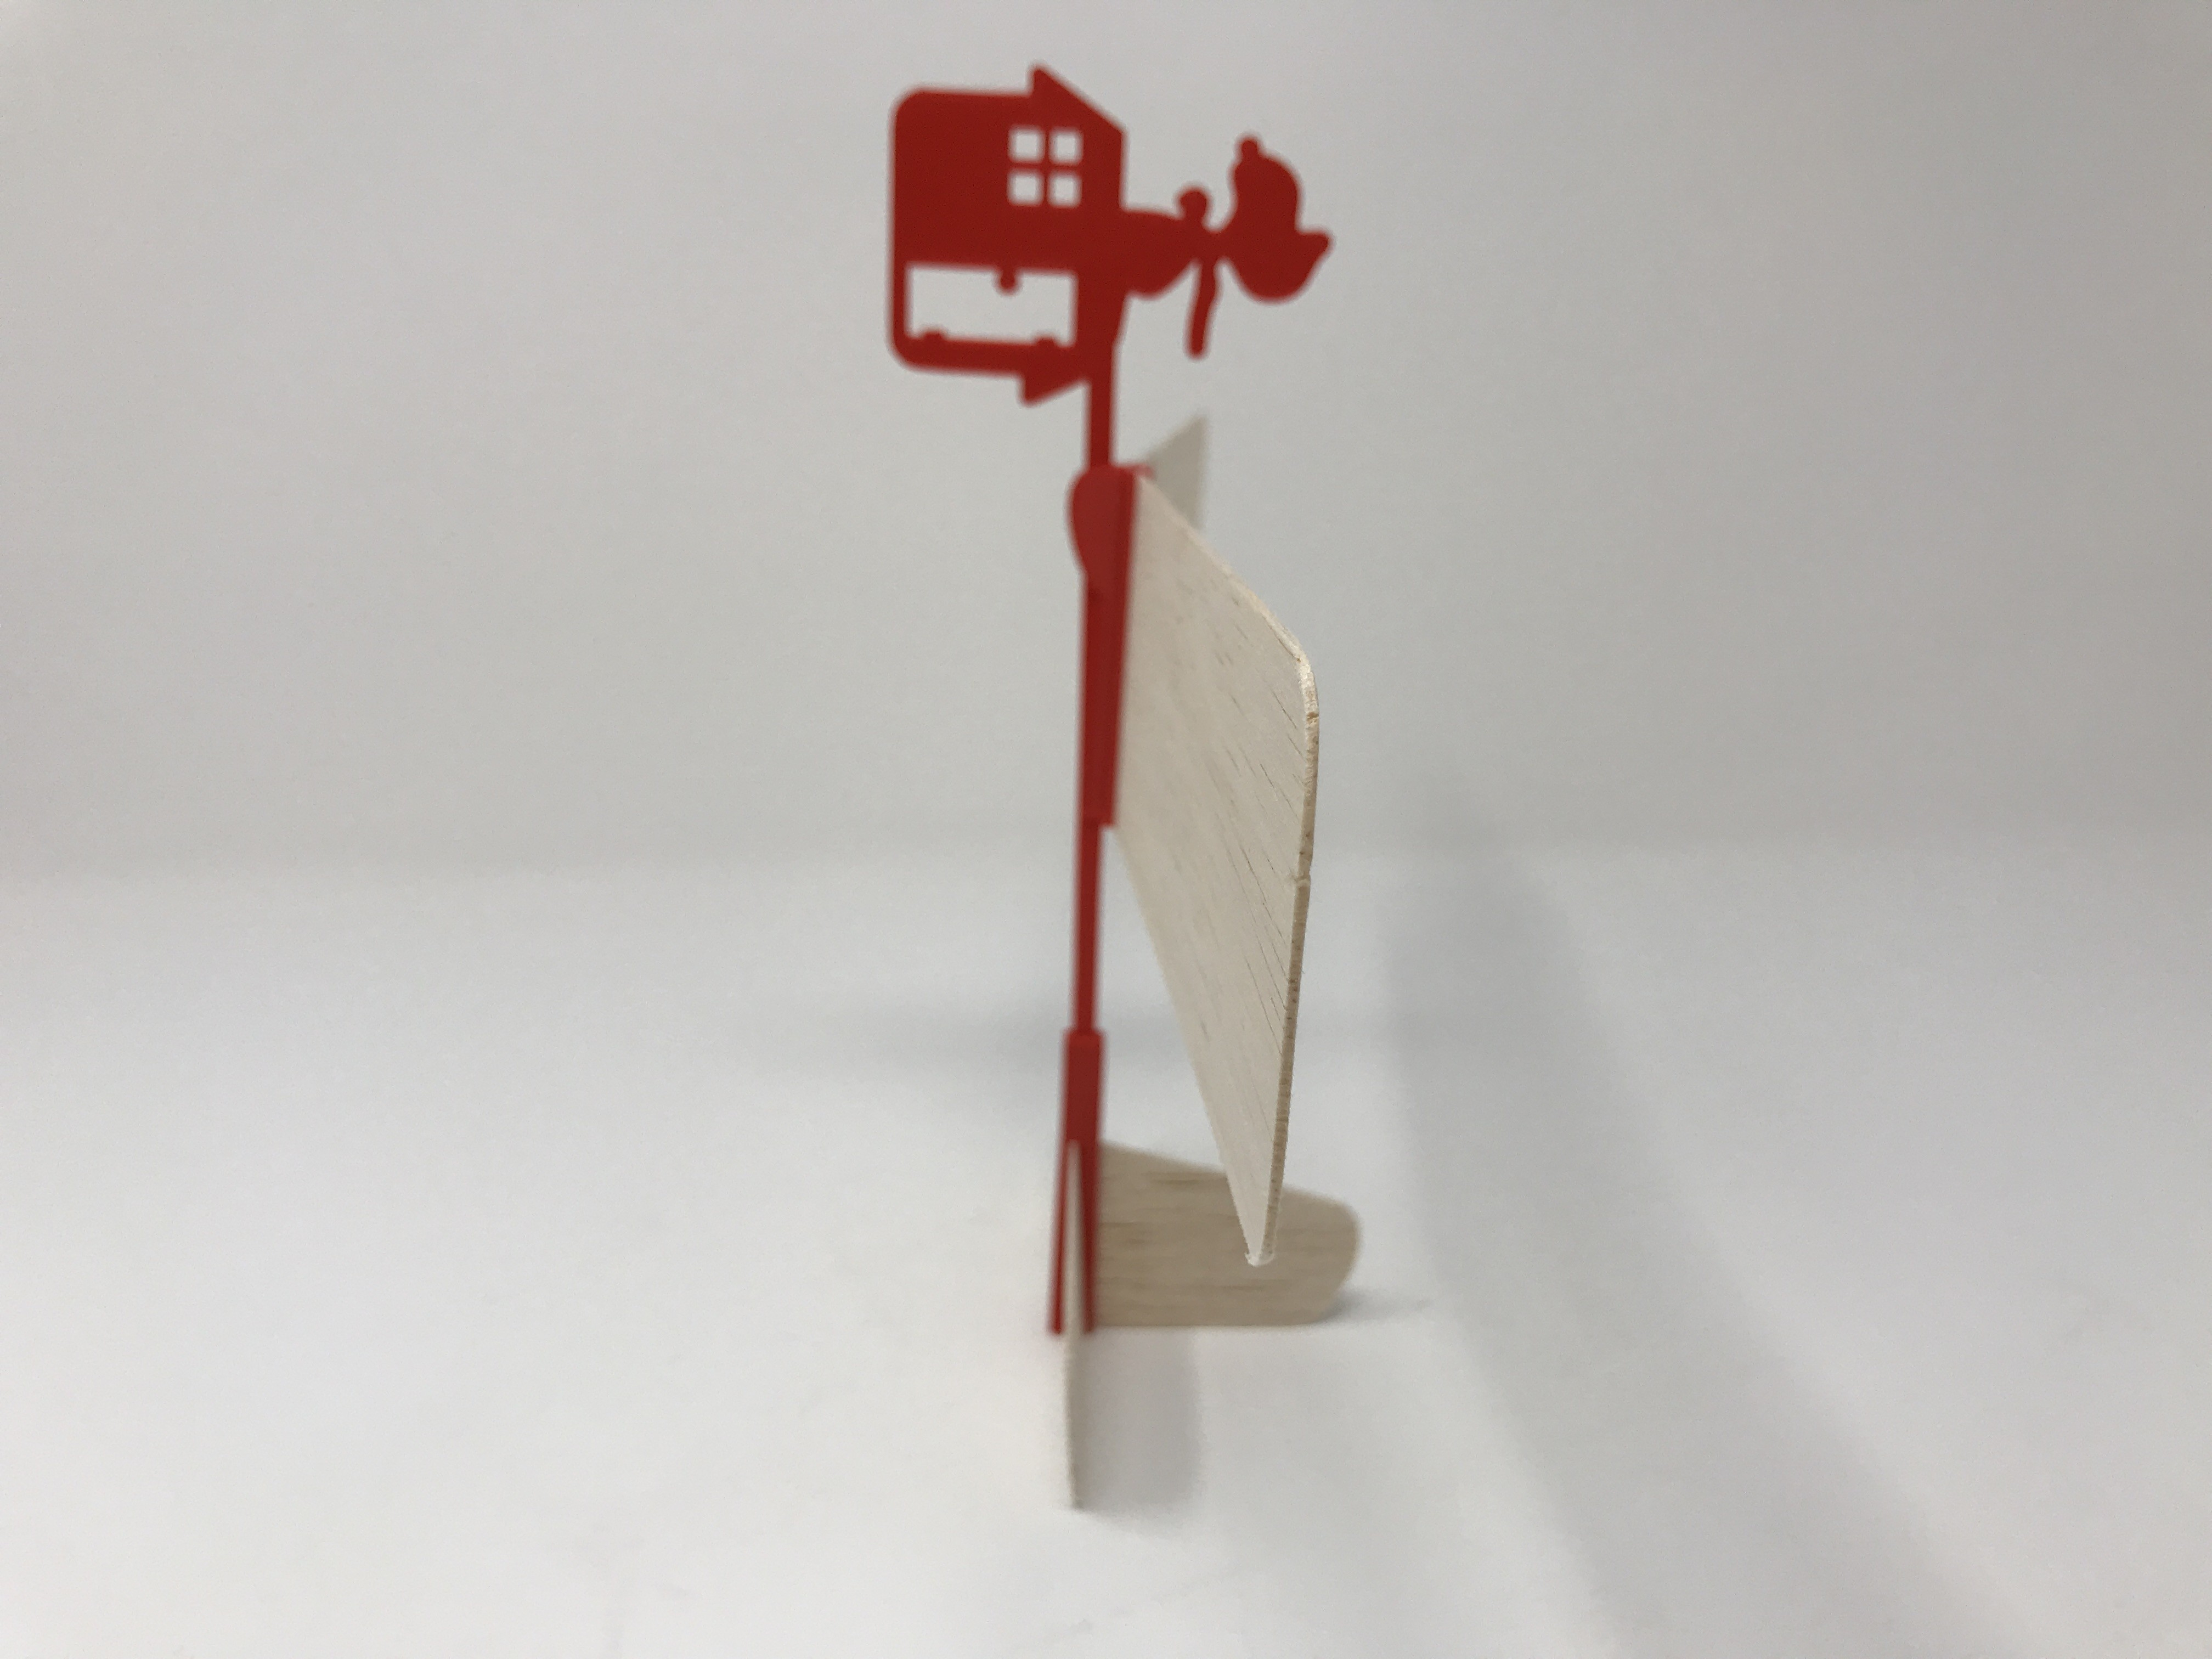 IMG_1564.jpg Download free STL file Red Baron Hand Launched Glider • 3D printer template, gzumwalt